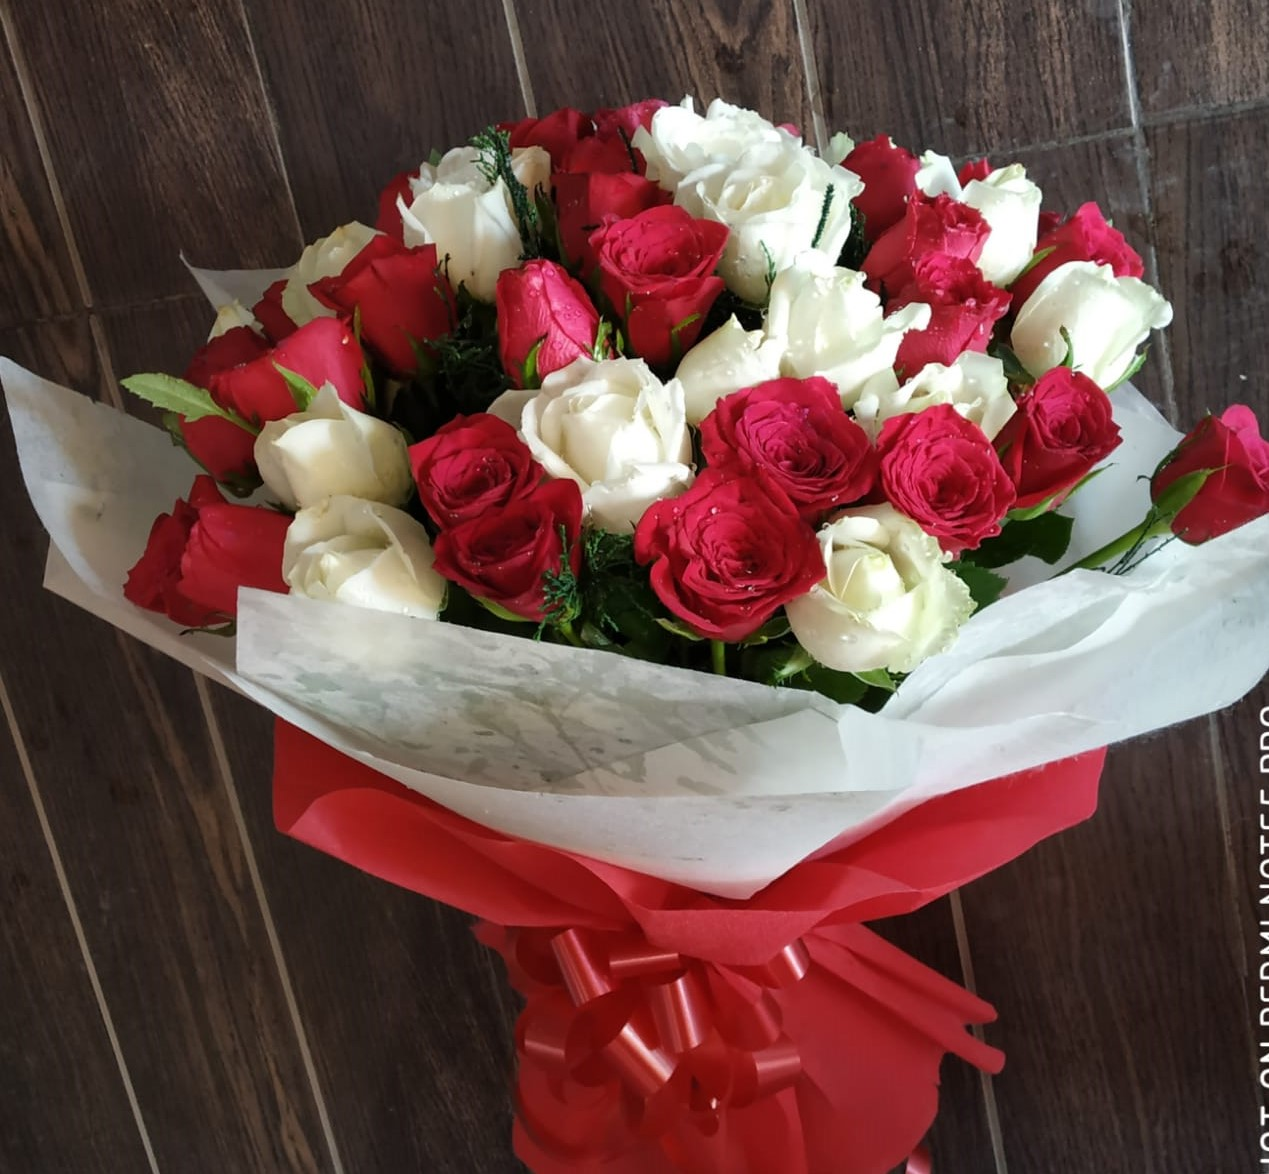 Flowers Delivery in FaridabadRed & White Roses in Duble Layer Packing